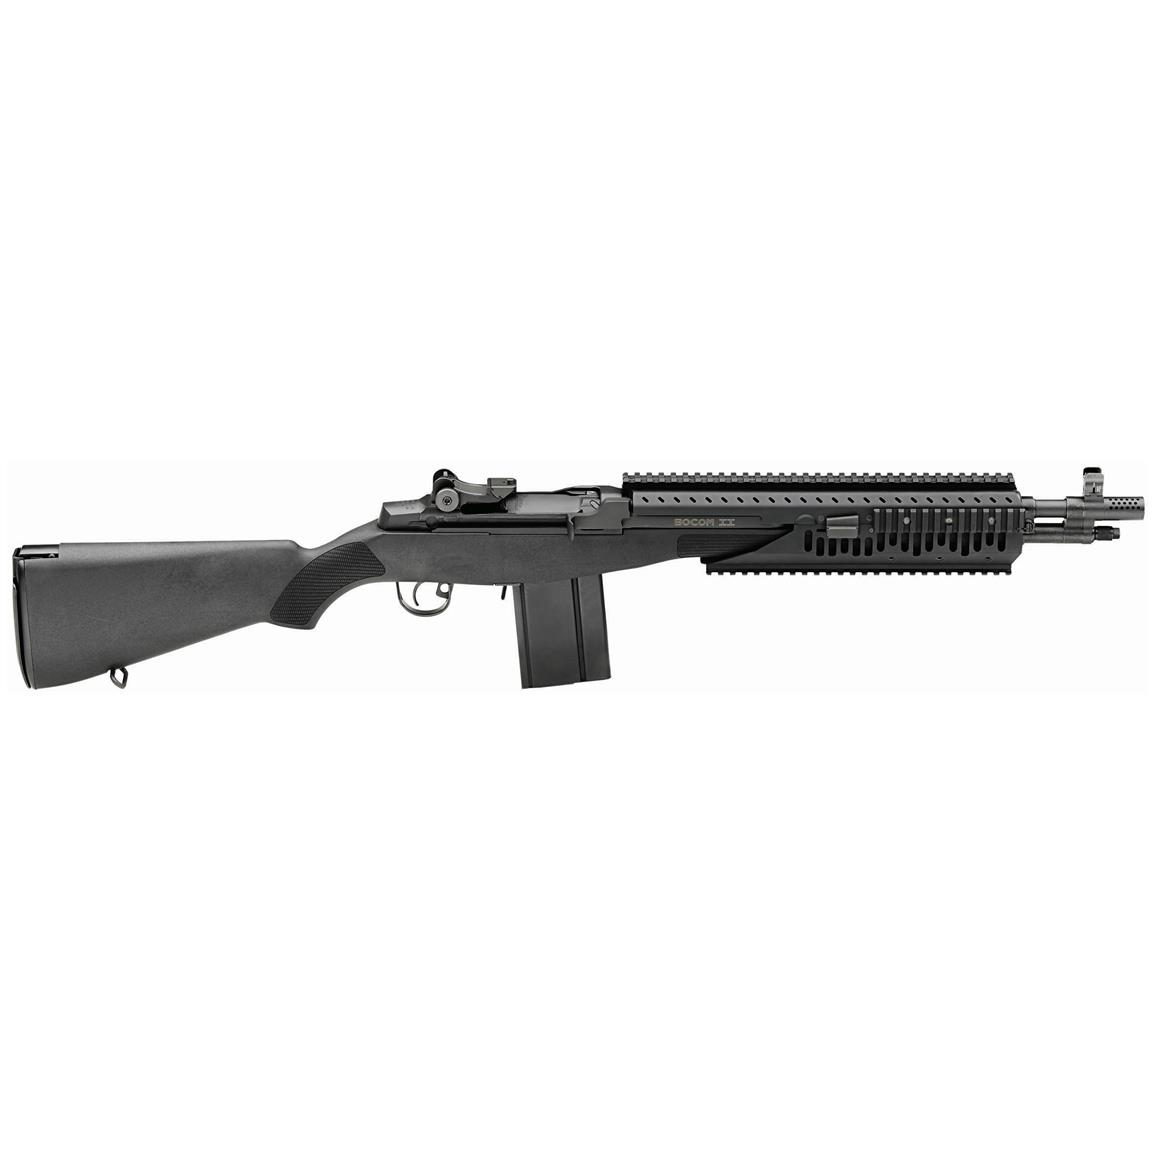 Springfield M1A SOCOM II, Semi-Automatic, .308 Winchester, Extended Top Rail, 10+1 Rounds